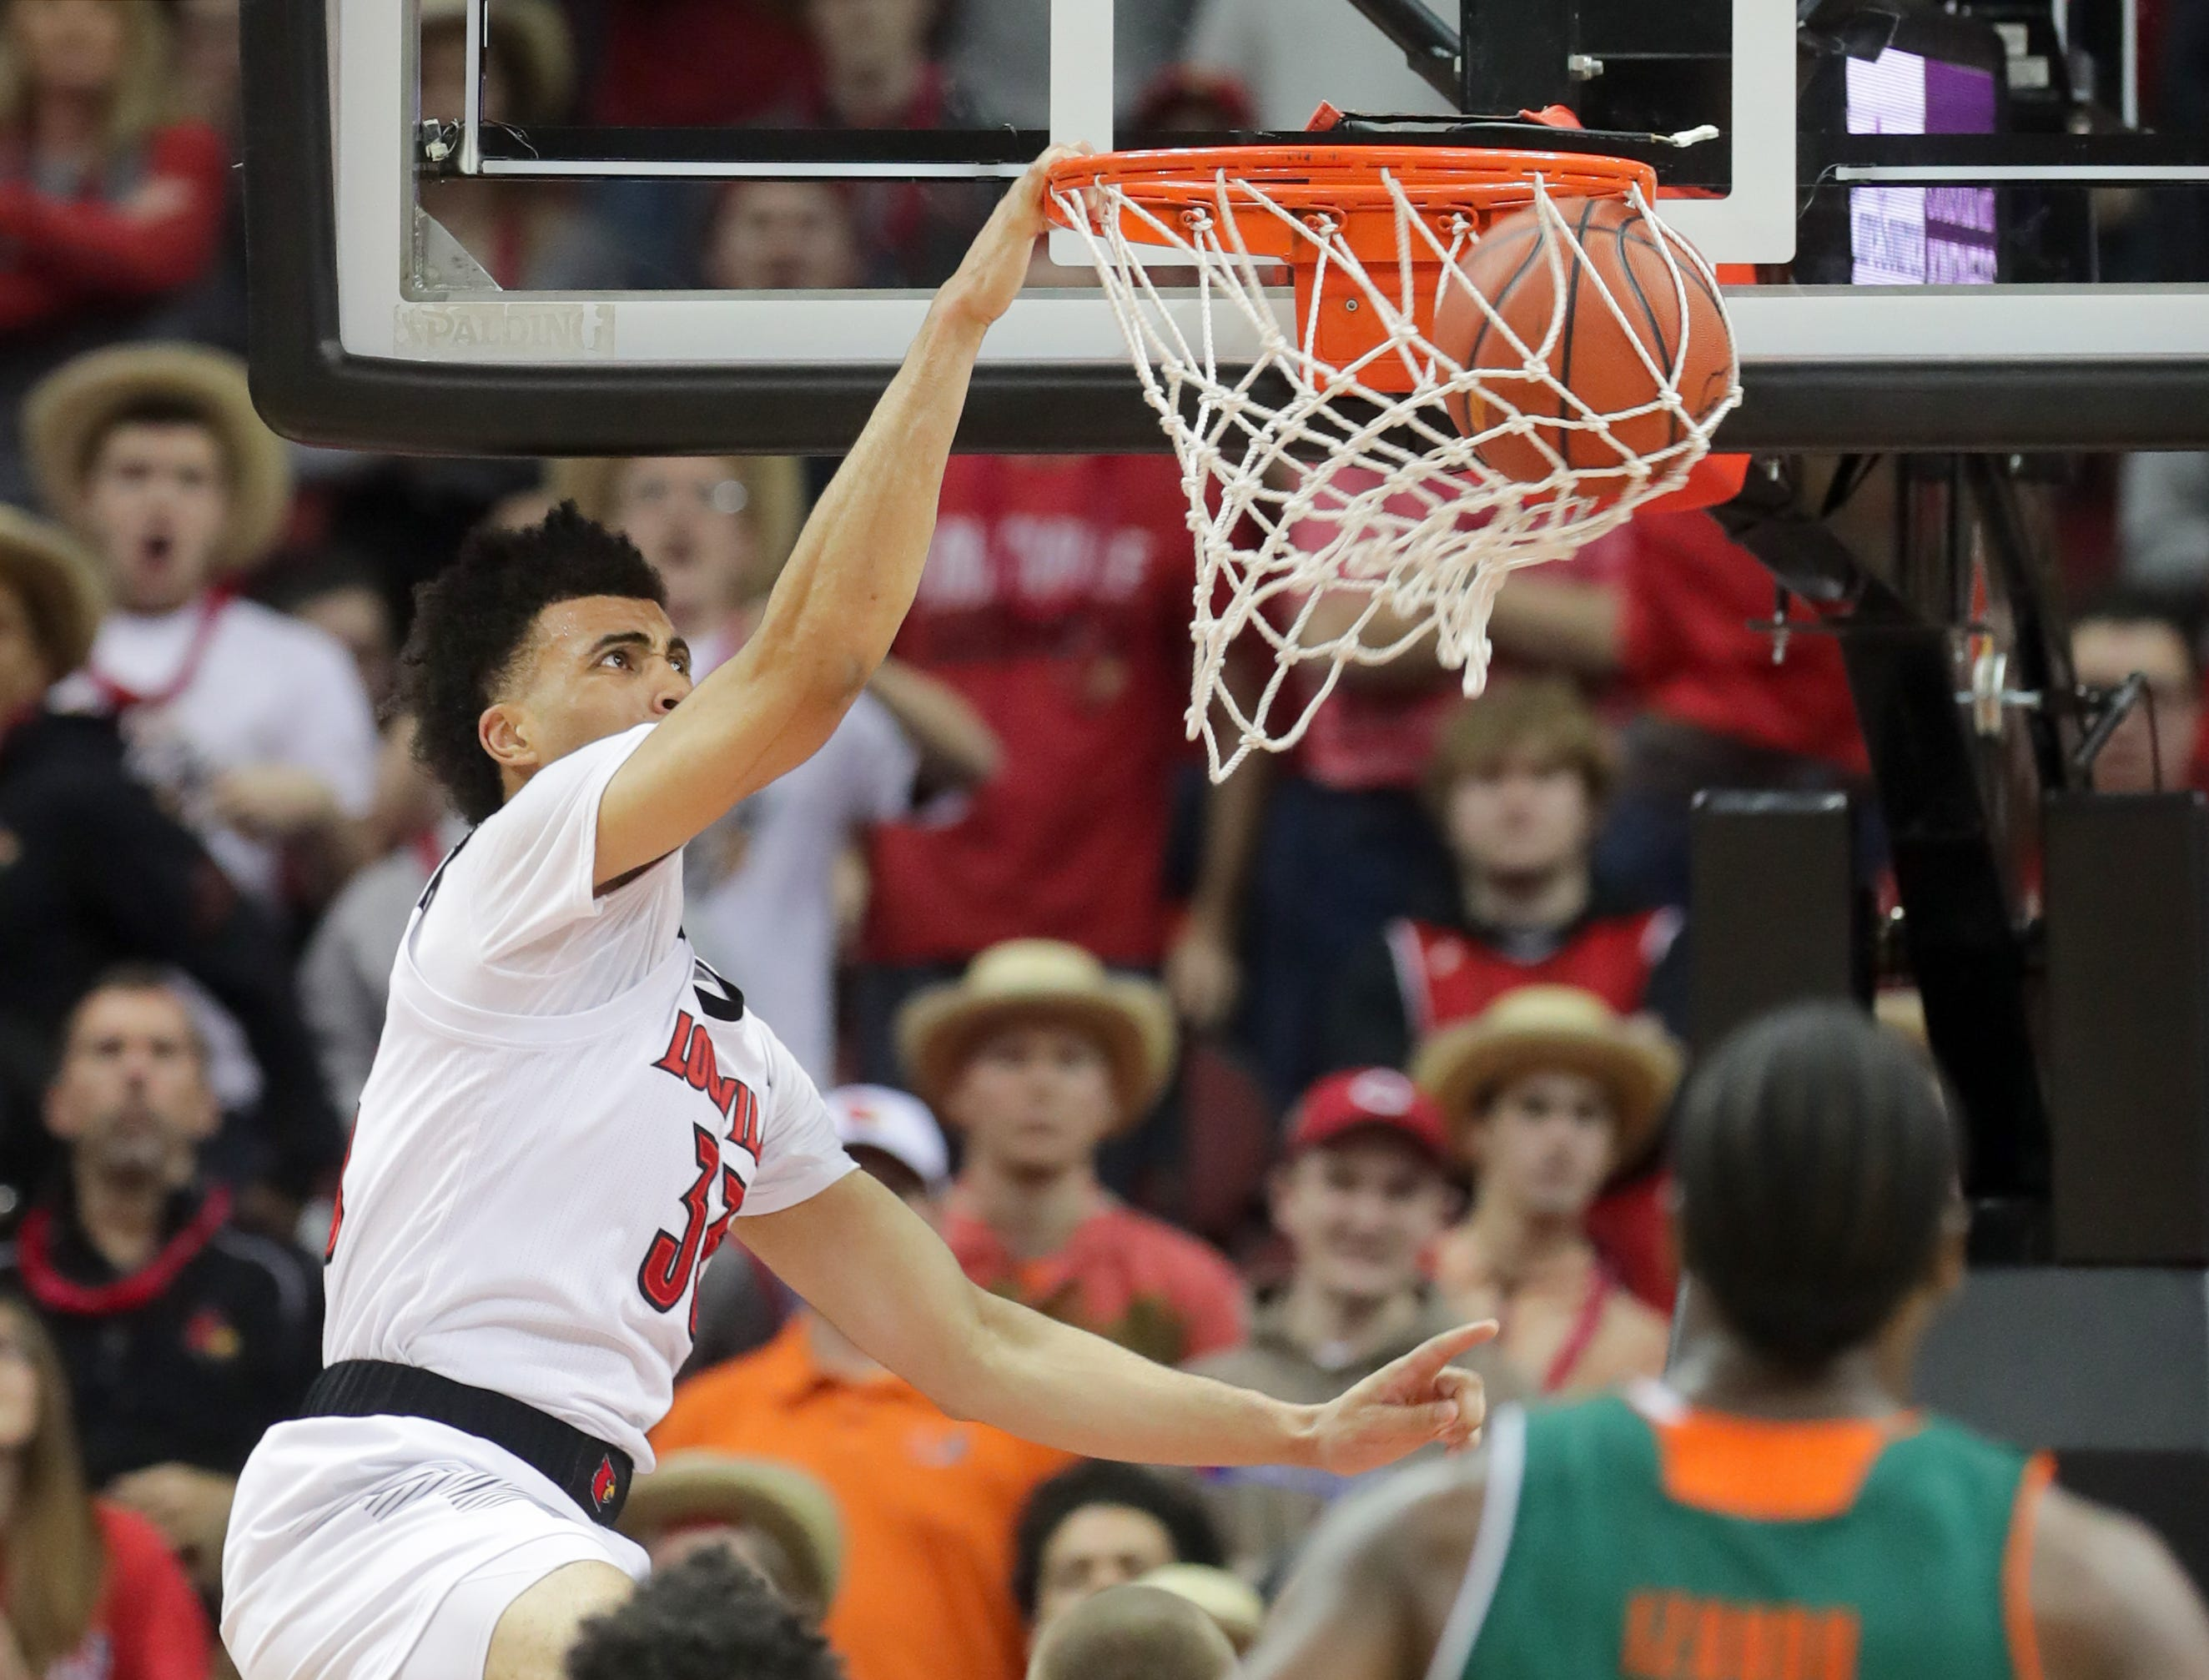 Louisville's Jordan Nwora with a monster dunk against Miami. 